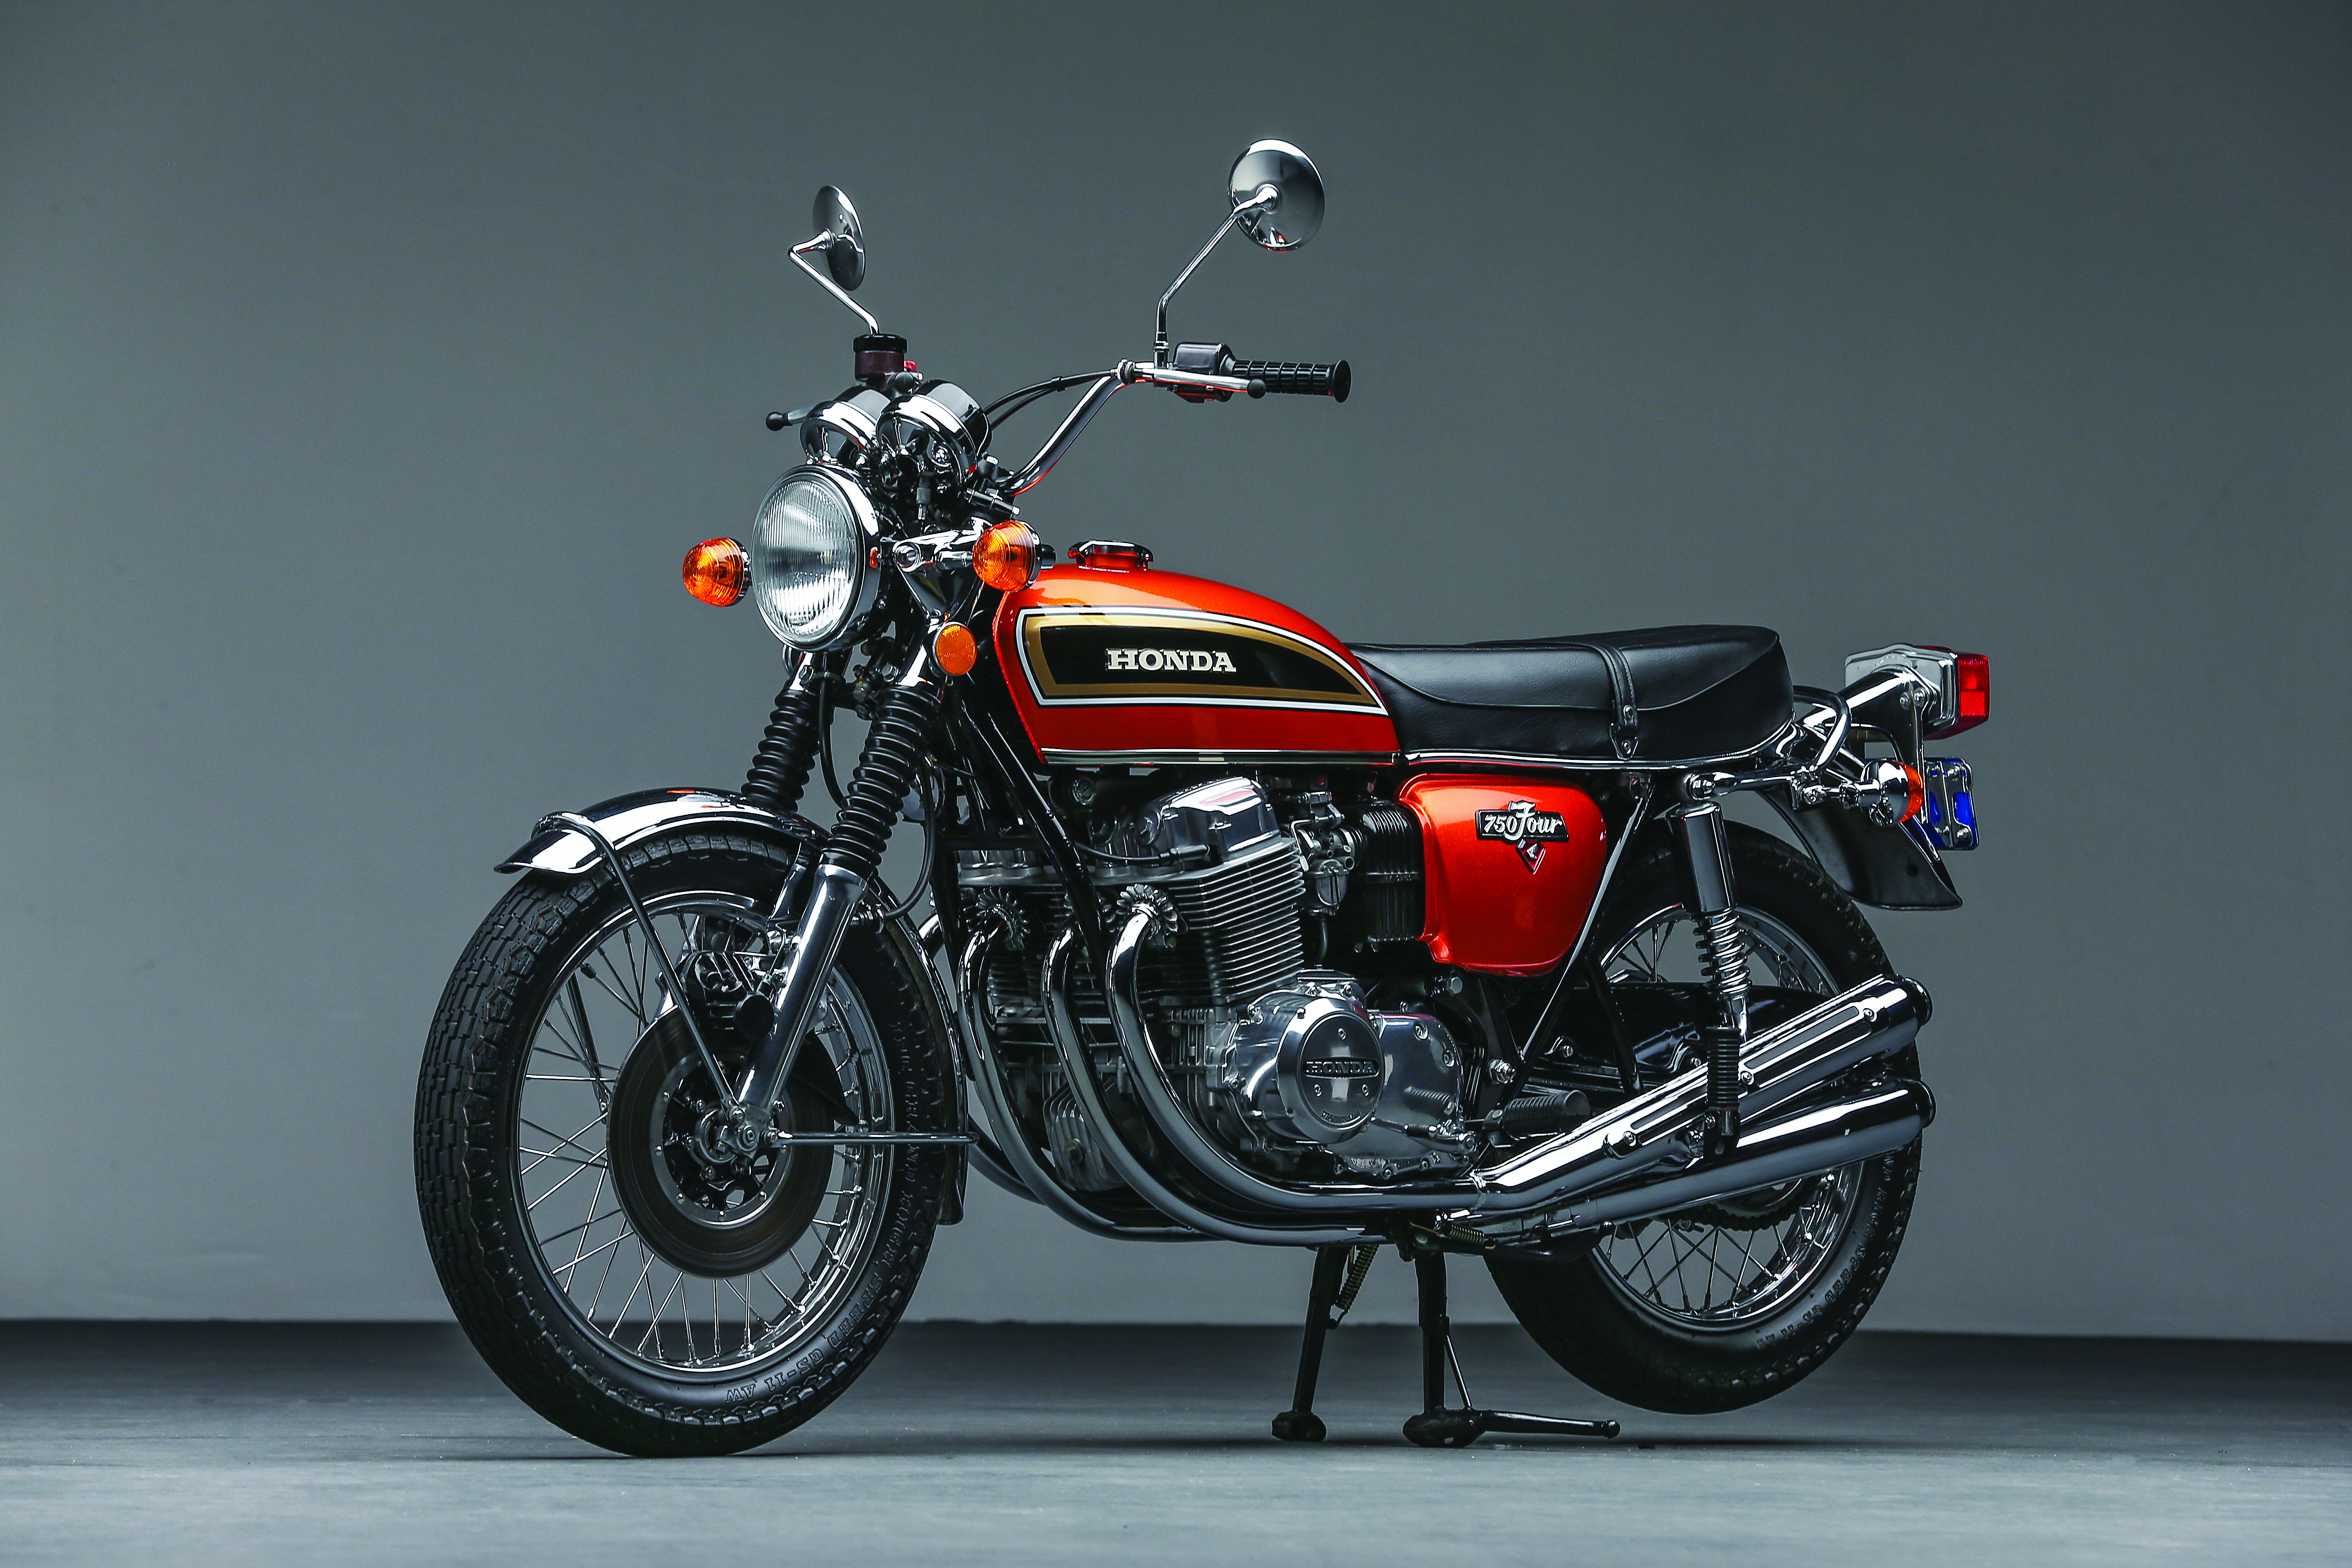 50 years ago, Honda unveiled the CB750 and changed